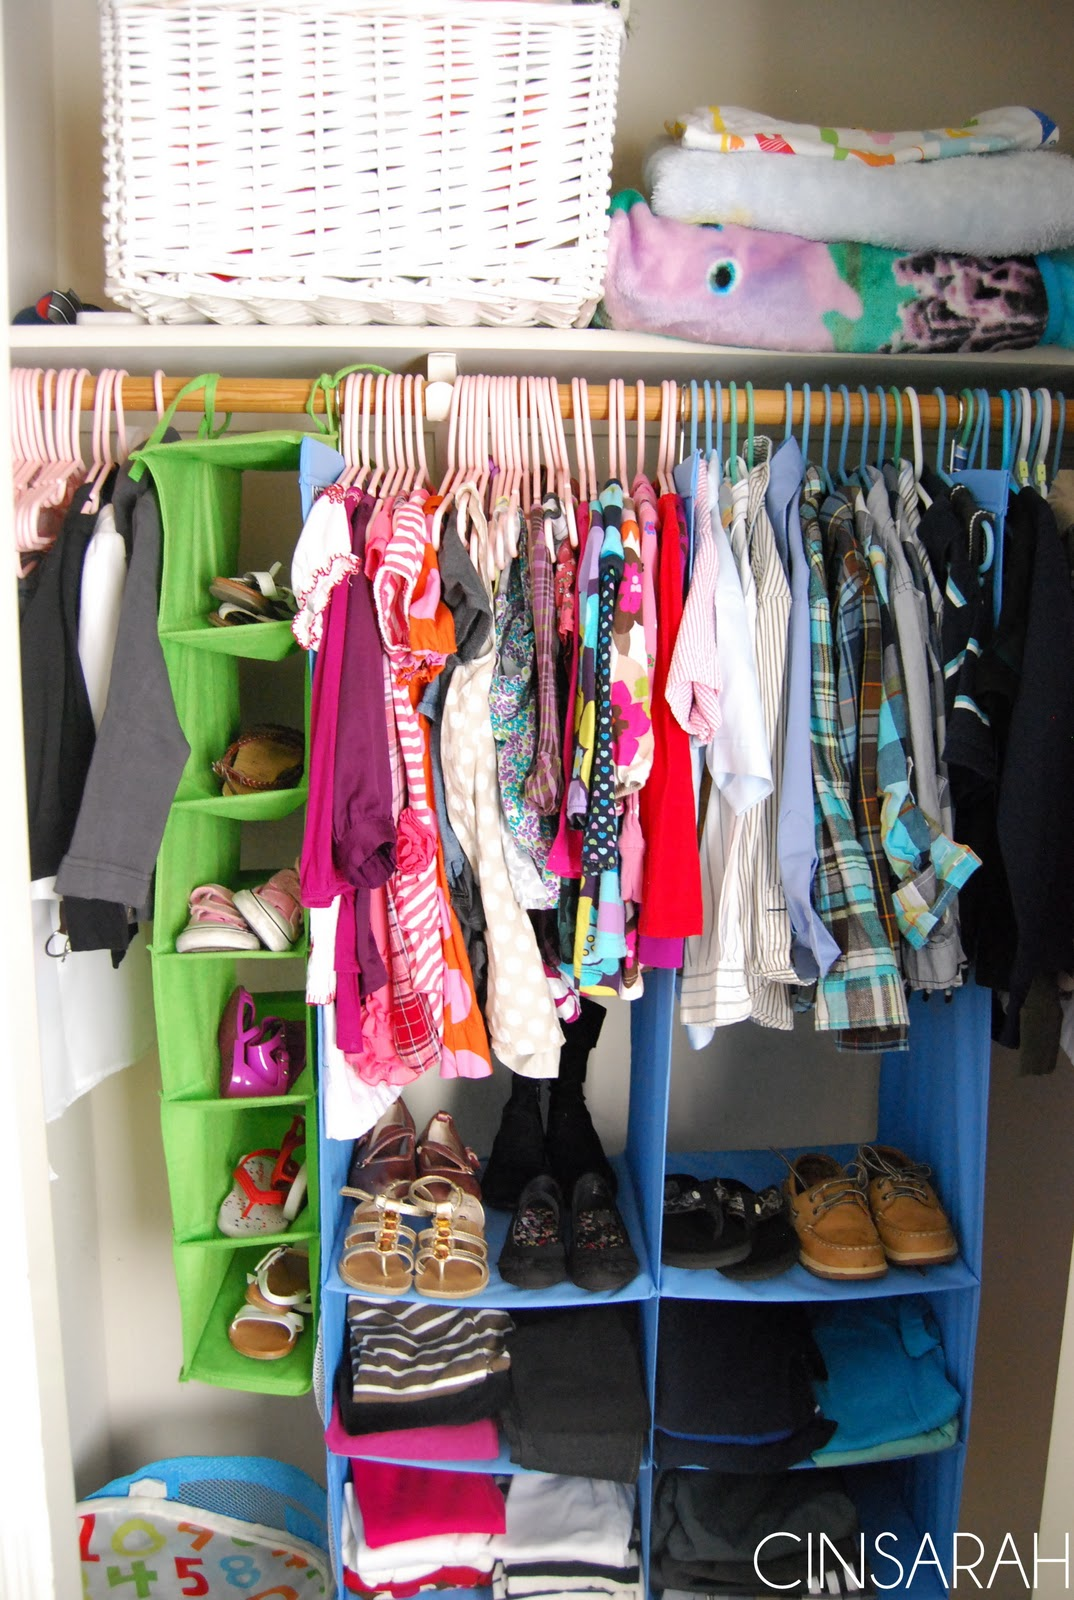 Charming And Here Is The Kids Closet With The New Organizer: